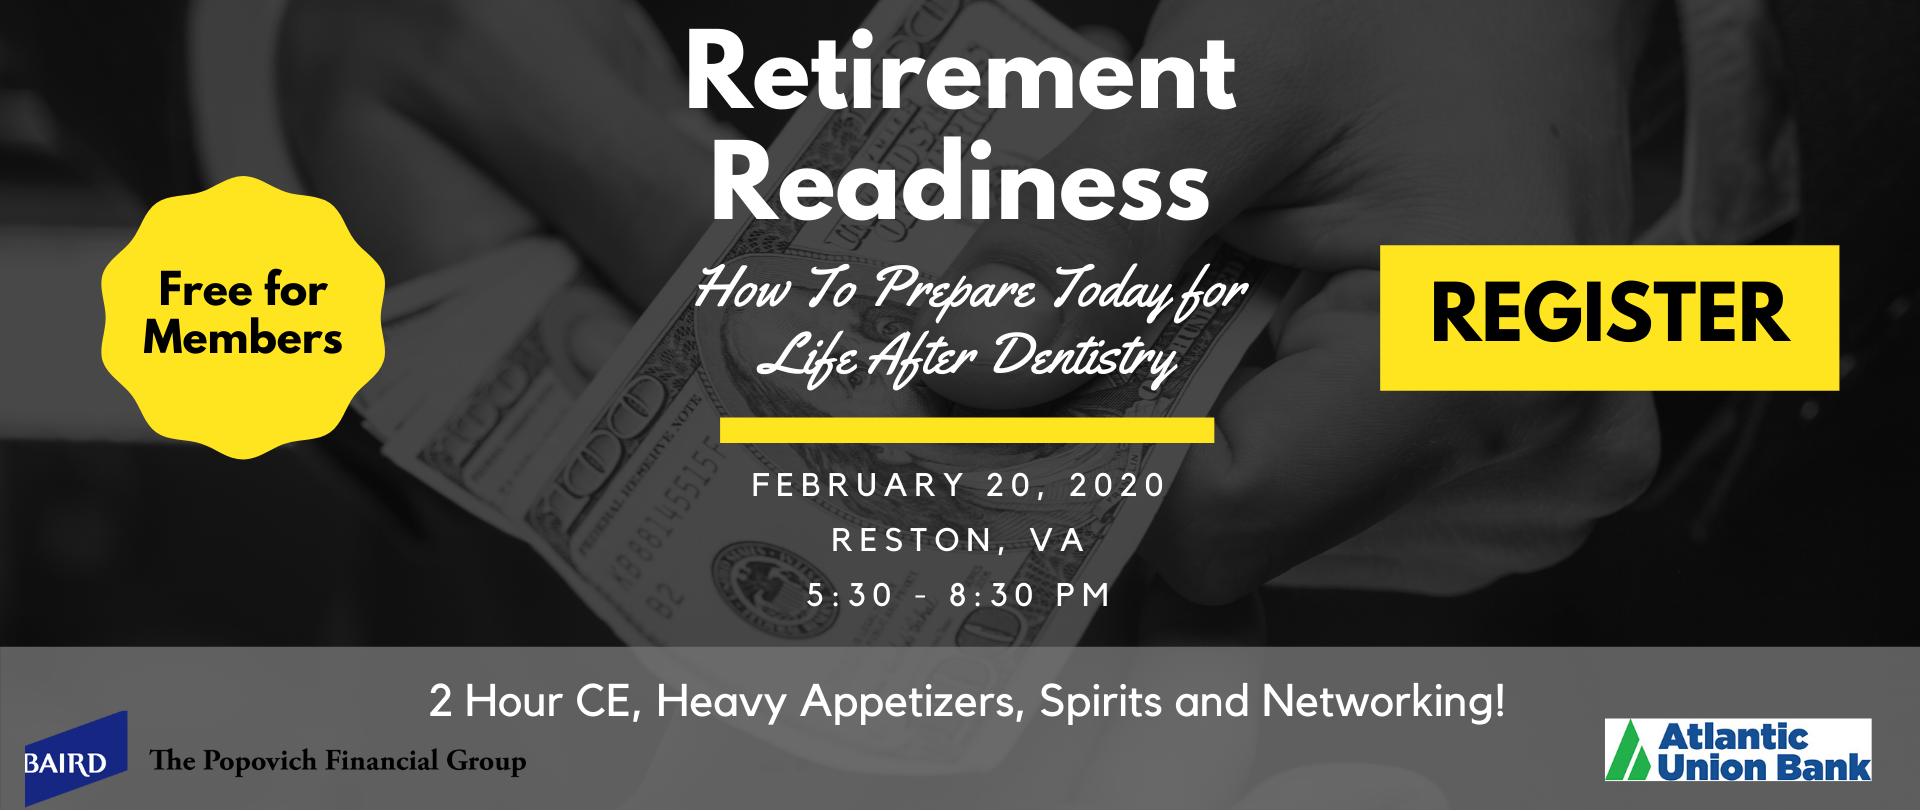 Retirement Readiness: How To Prepare Today for Life After Dentistry